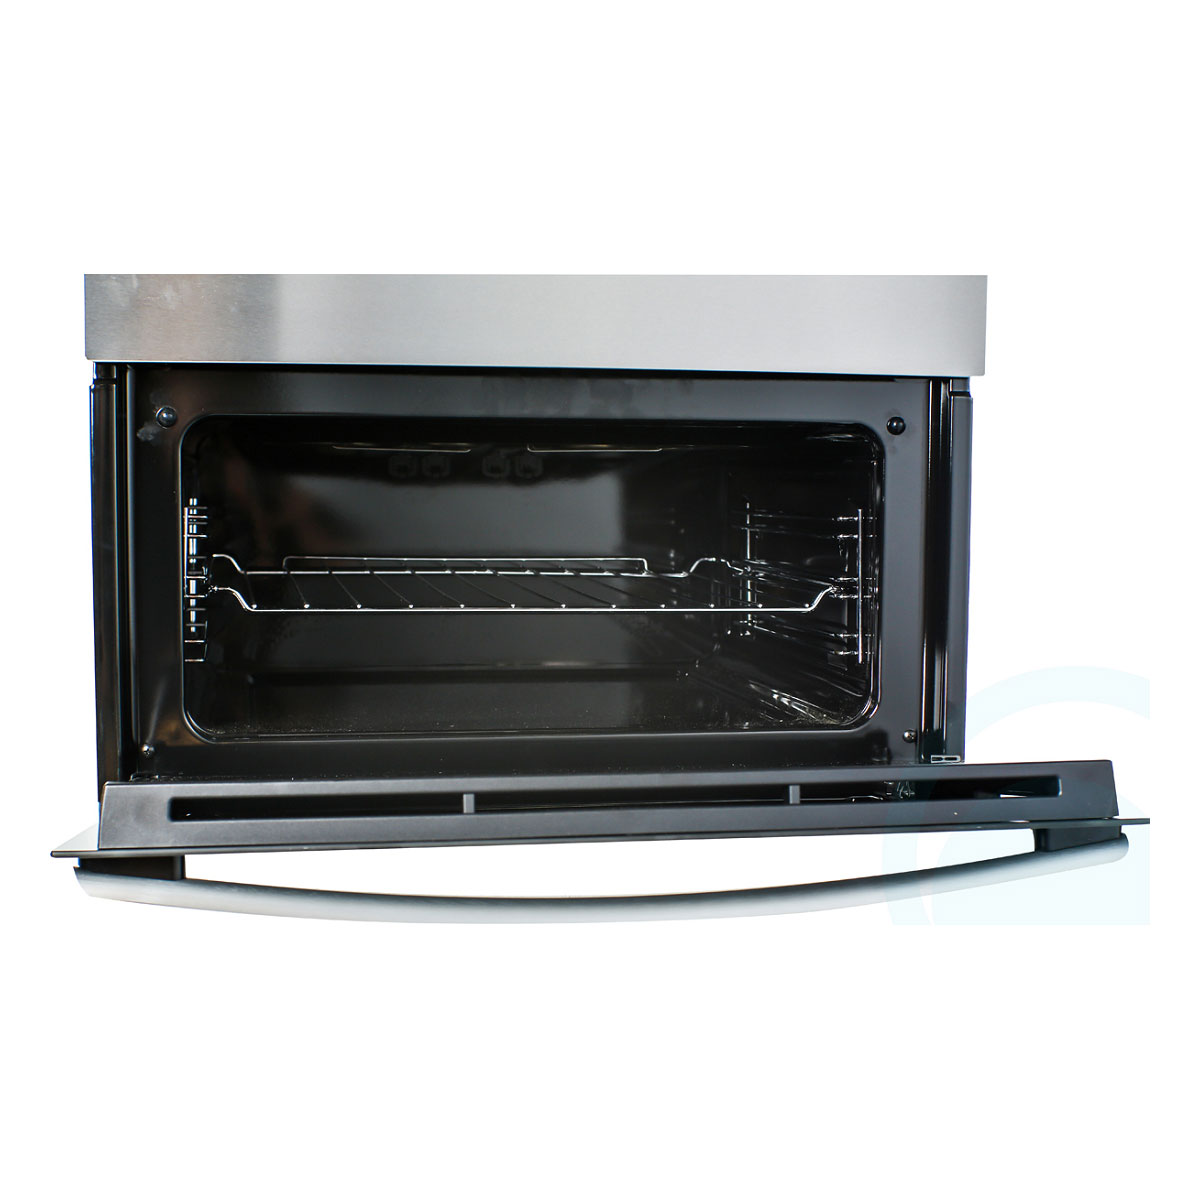 Westinghouse WVE665S Built-In Oven 27010